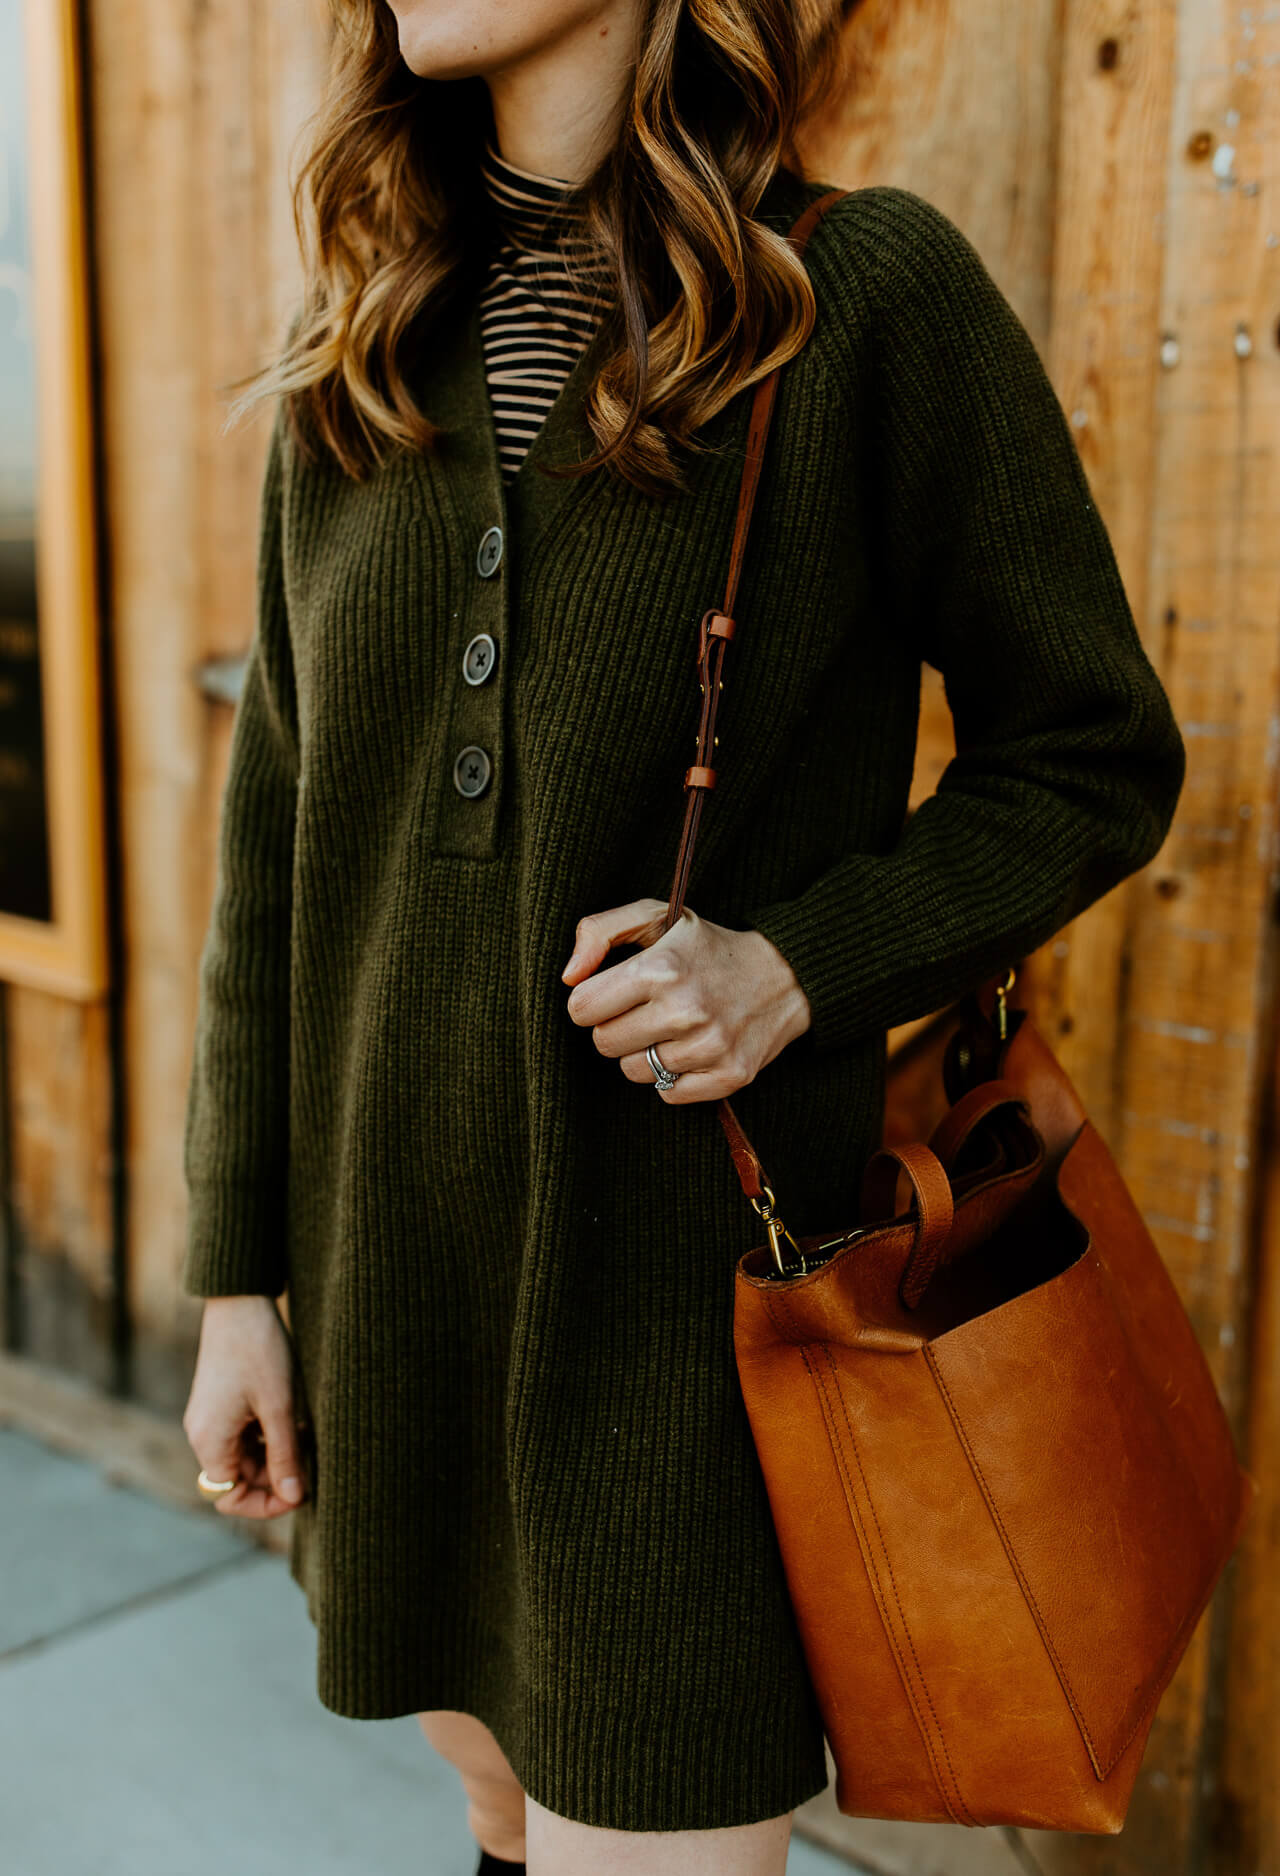 outfit inspiration for January - M Loves M @marmar